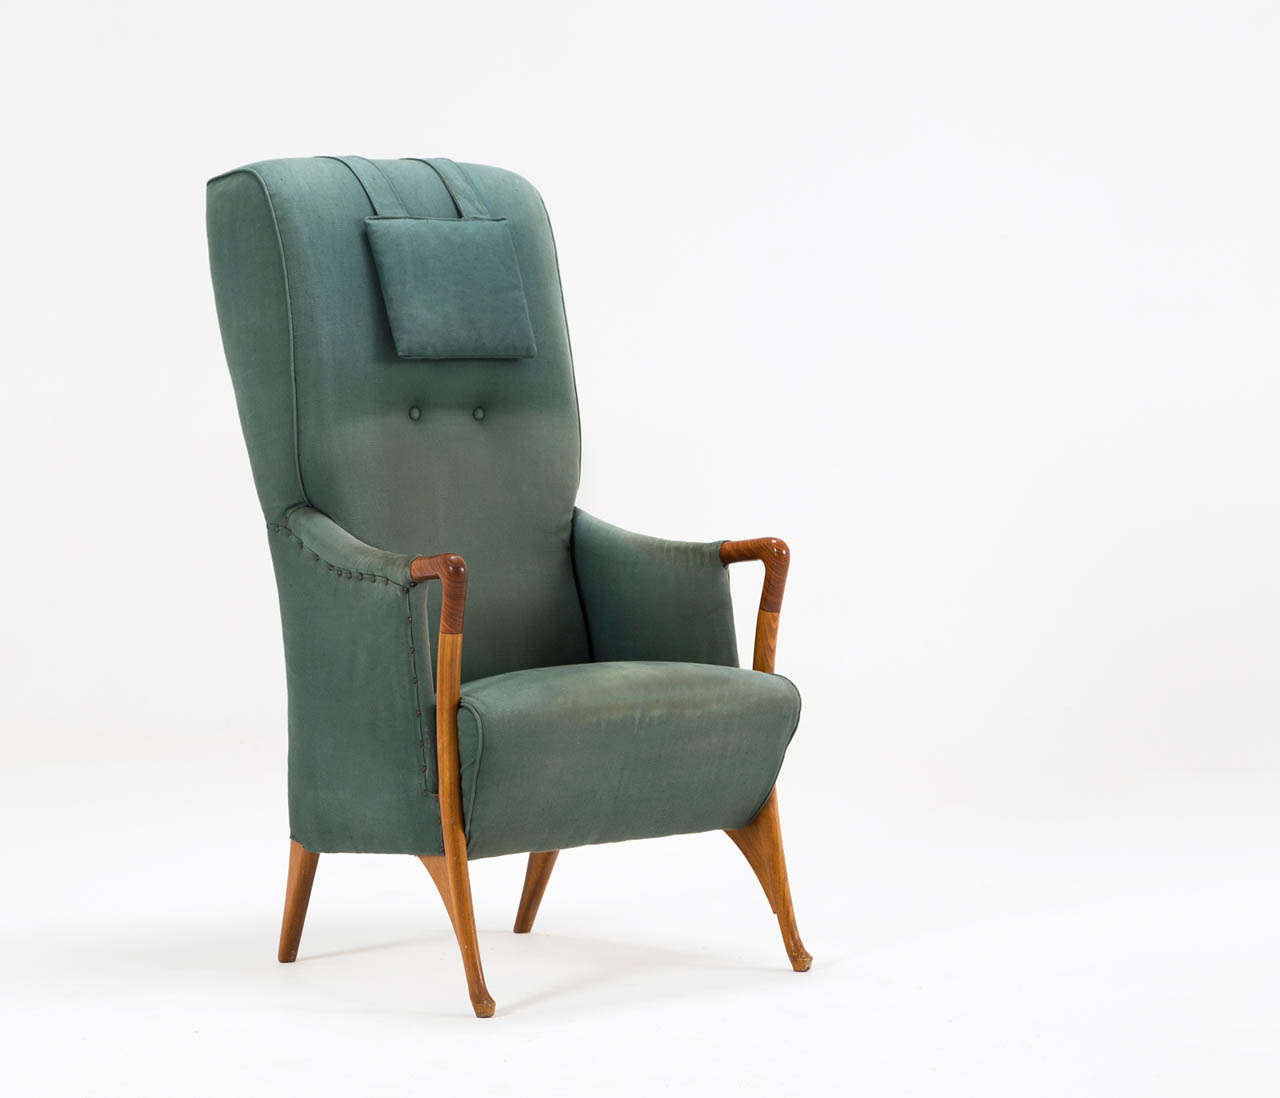 Exceptional Italian High Back Lounge Chair For Sale At 1stdibs